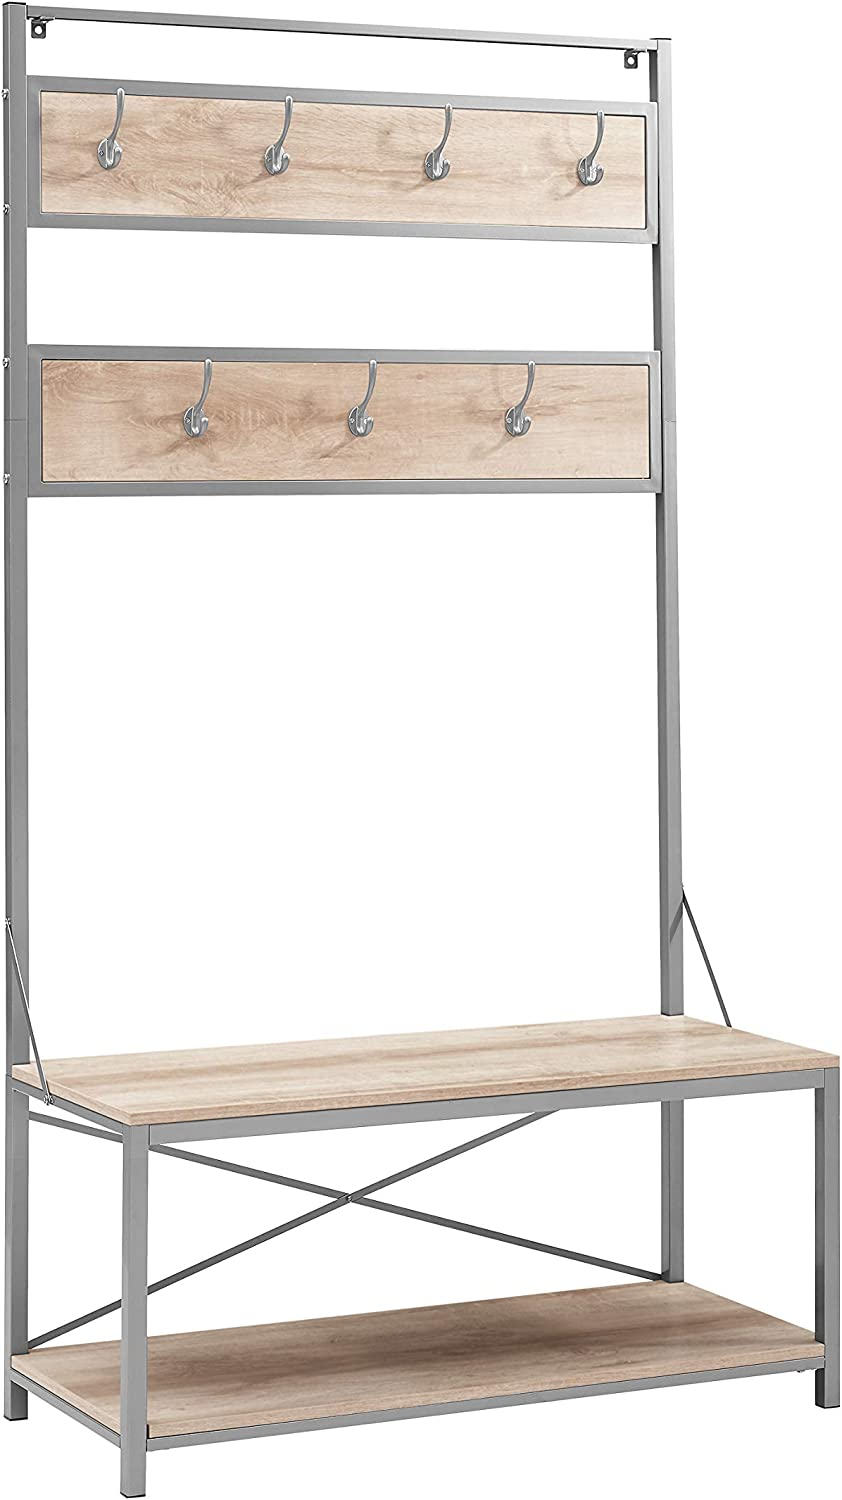 WE Furniture Farmhouse Entry Bench Mudroom Hall Tree Storage Shelf Coat Rack 72 Inch White Oak